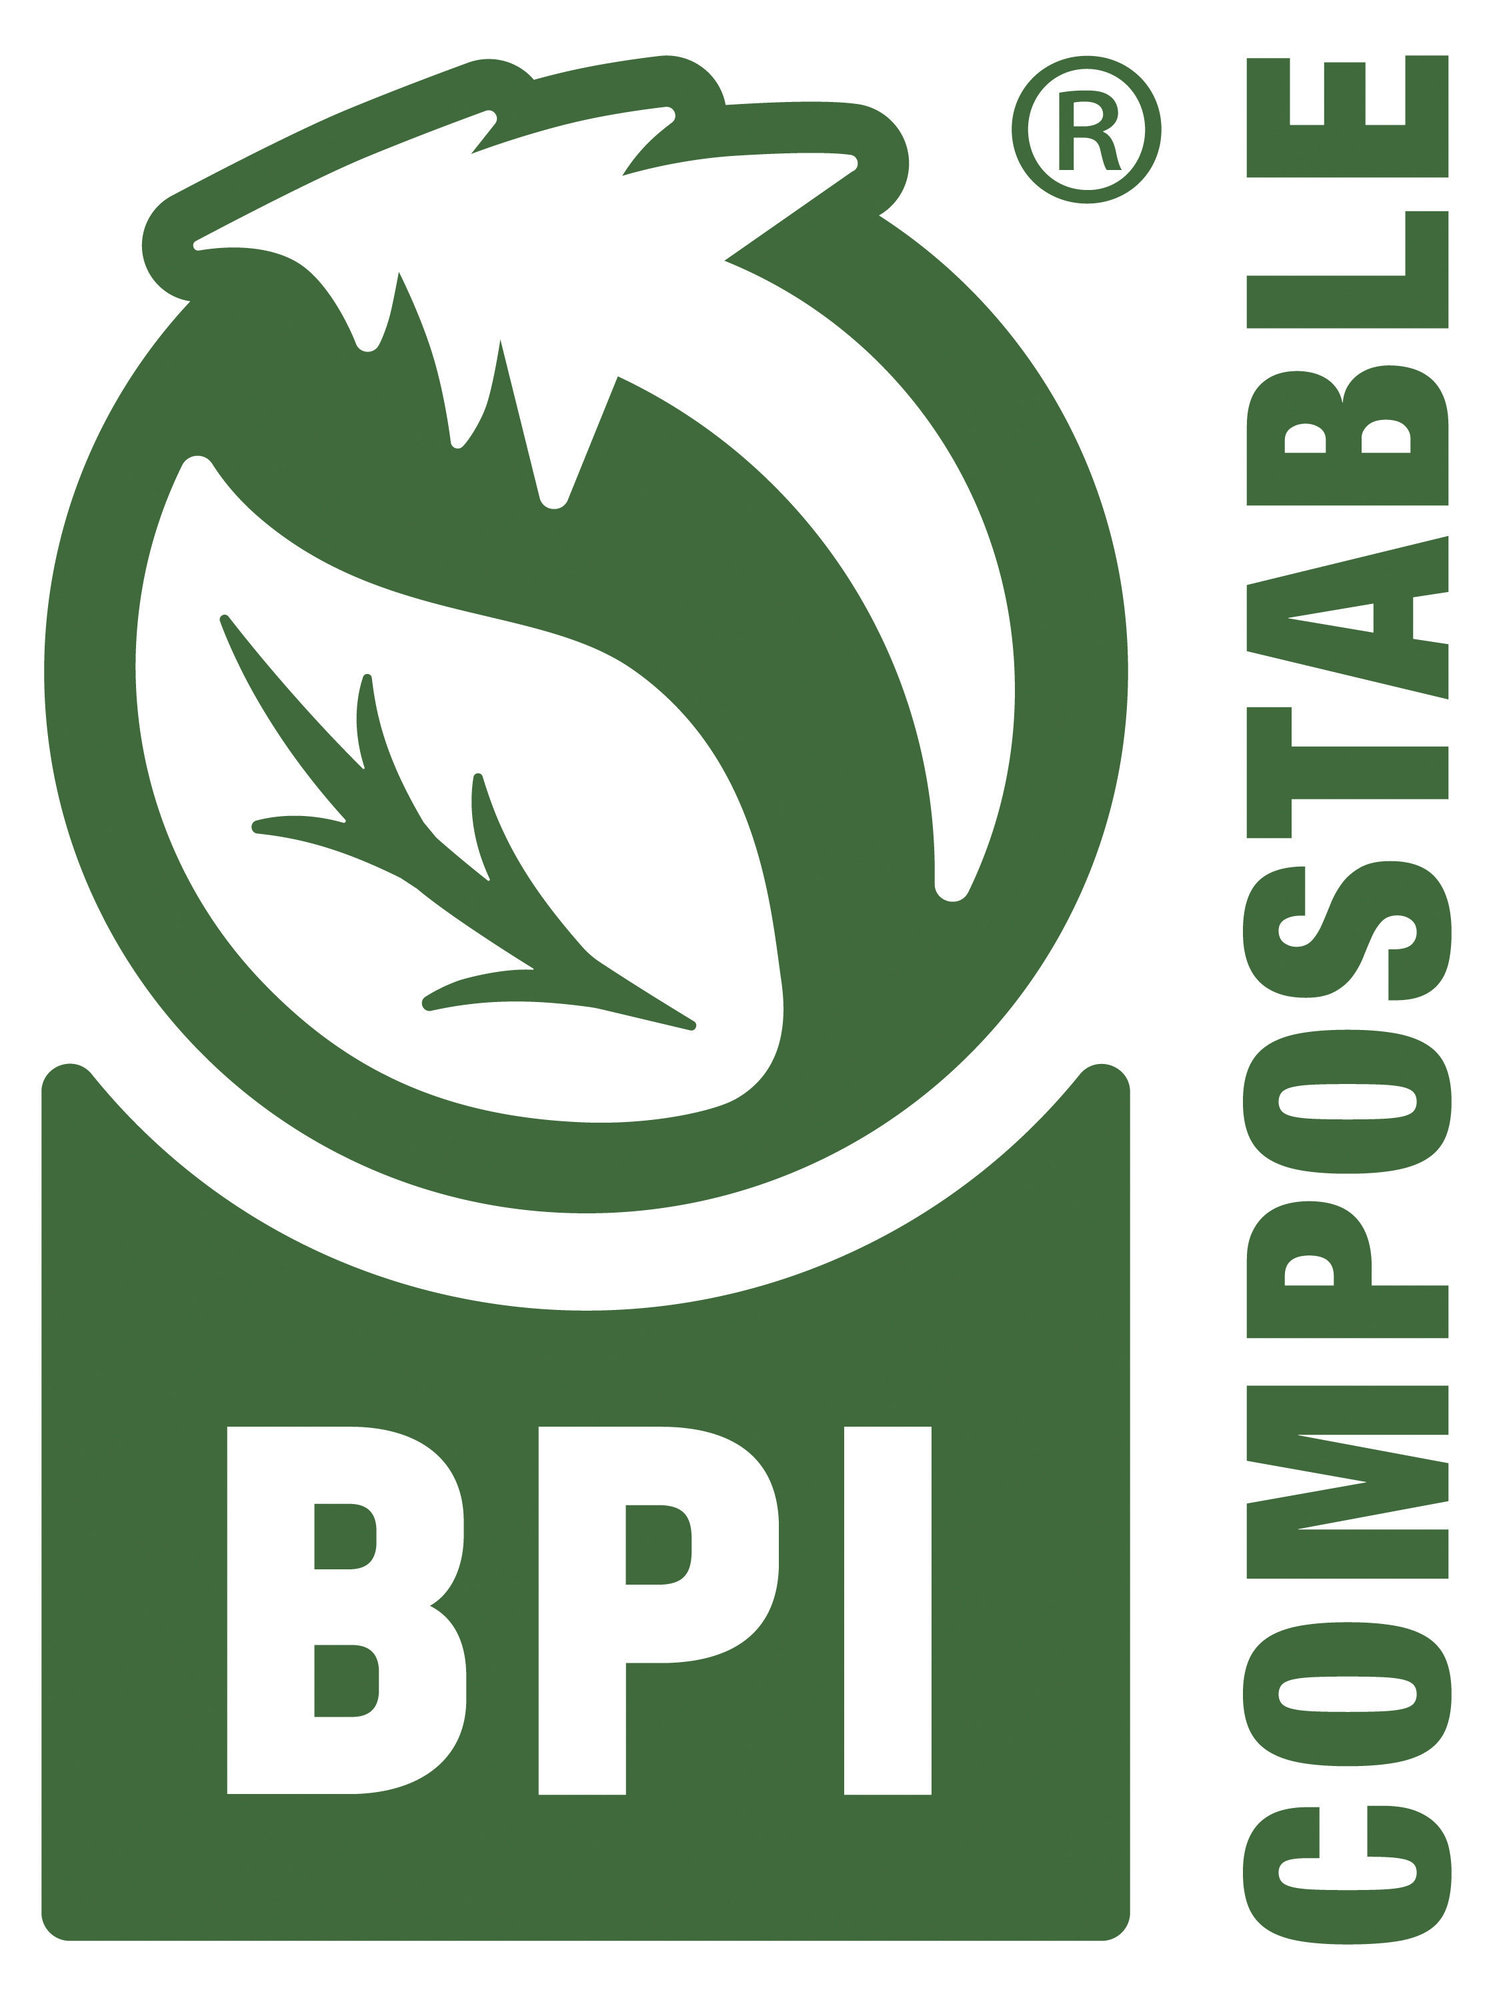 Compostable Bioplastics Make Inroads With Consumers But Do Have